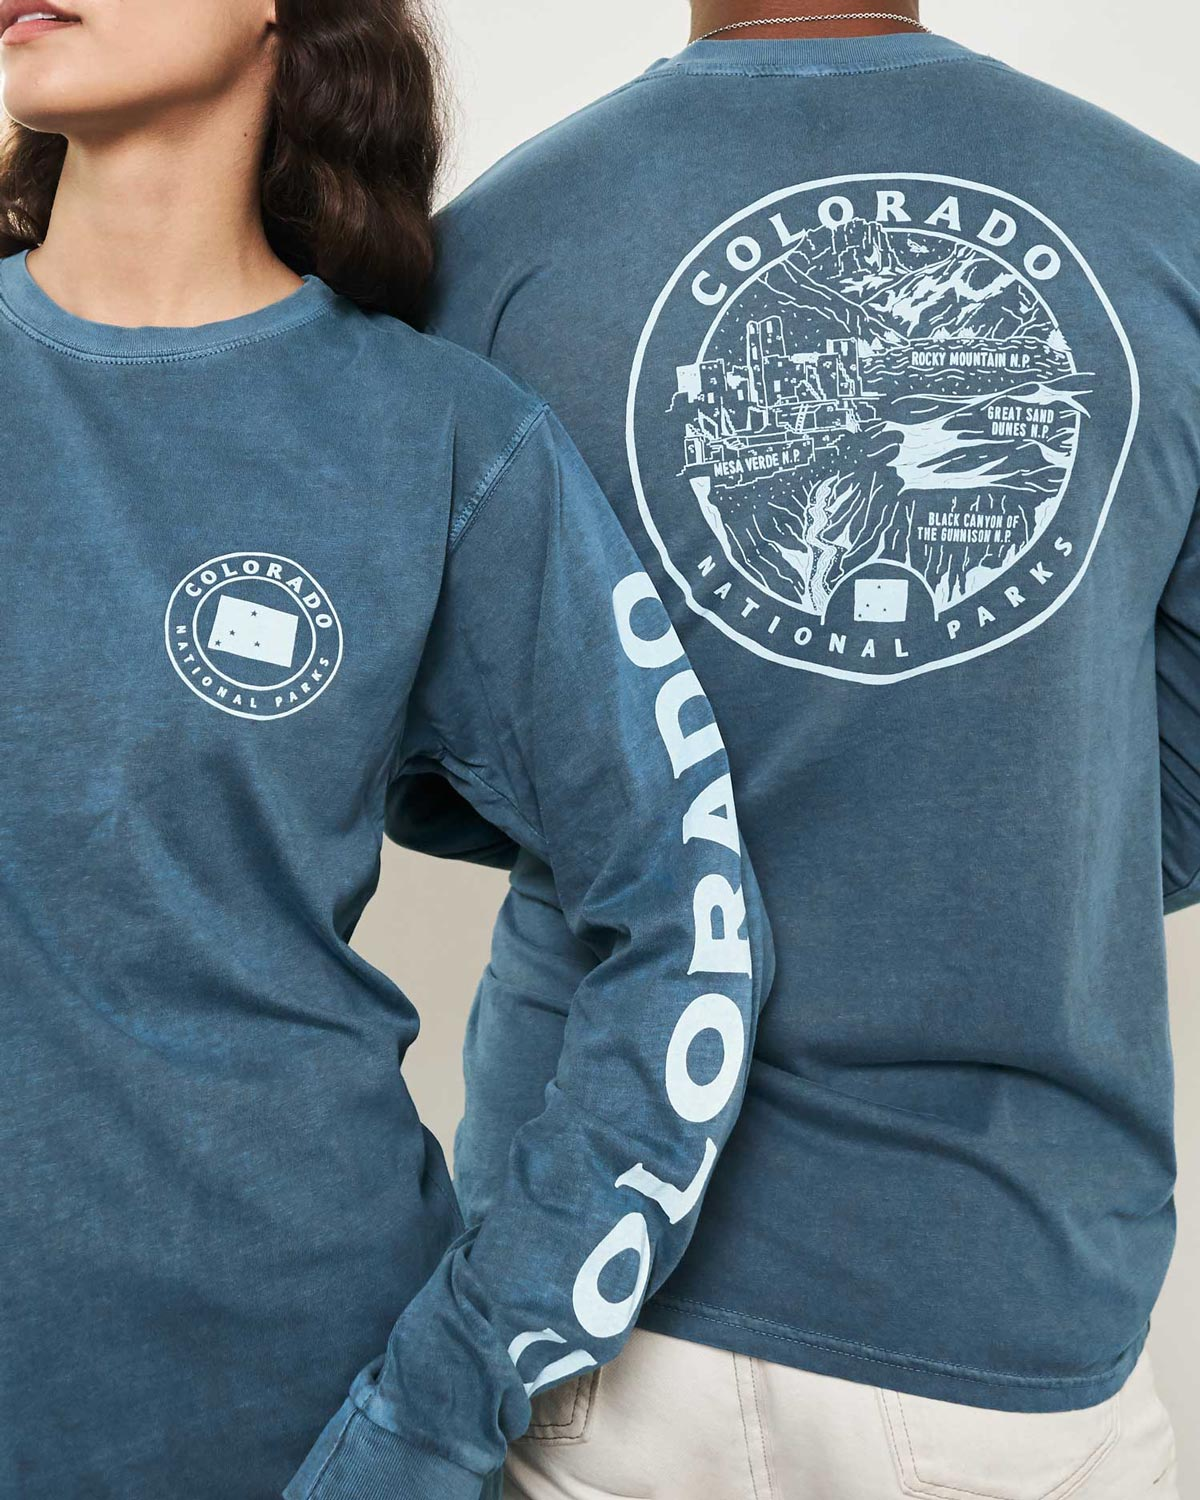 Colorado All Parks Roundup Long Sleeve Tee